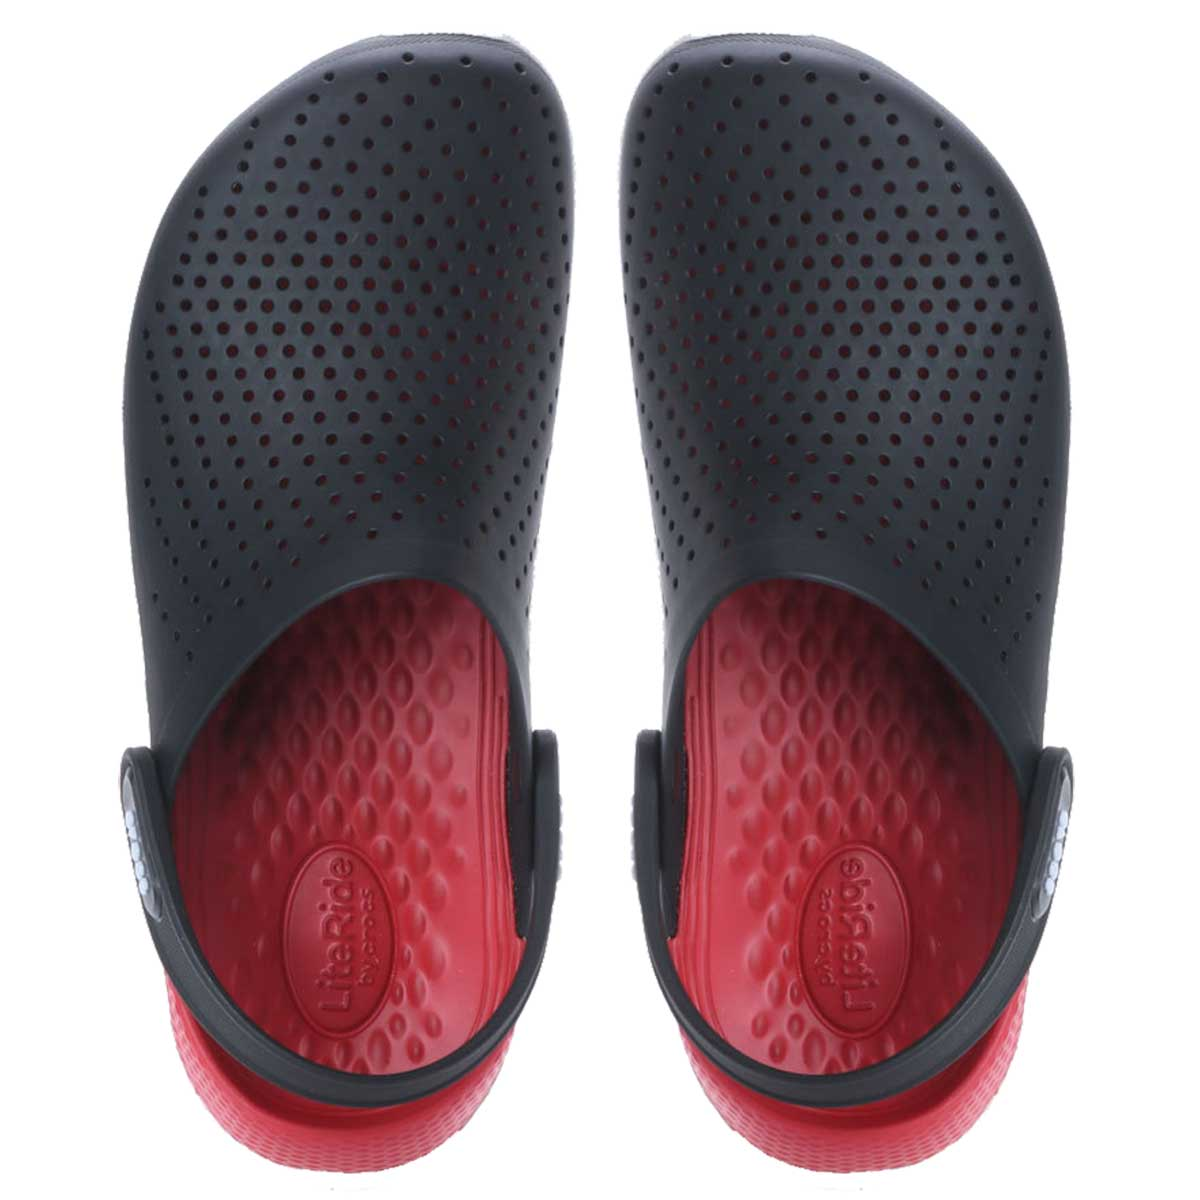 9712b9943 Crocs Baya Junior Flip (Black) Online at Lowest Price in India